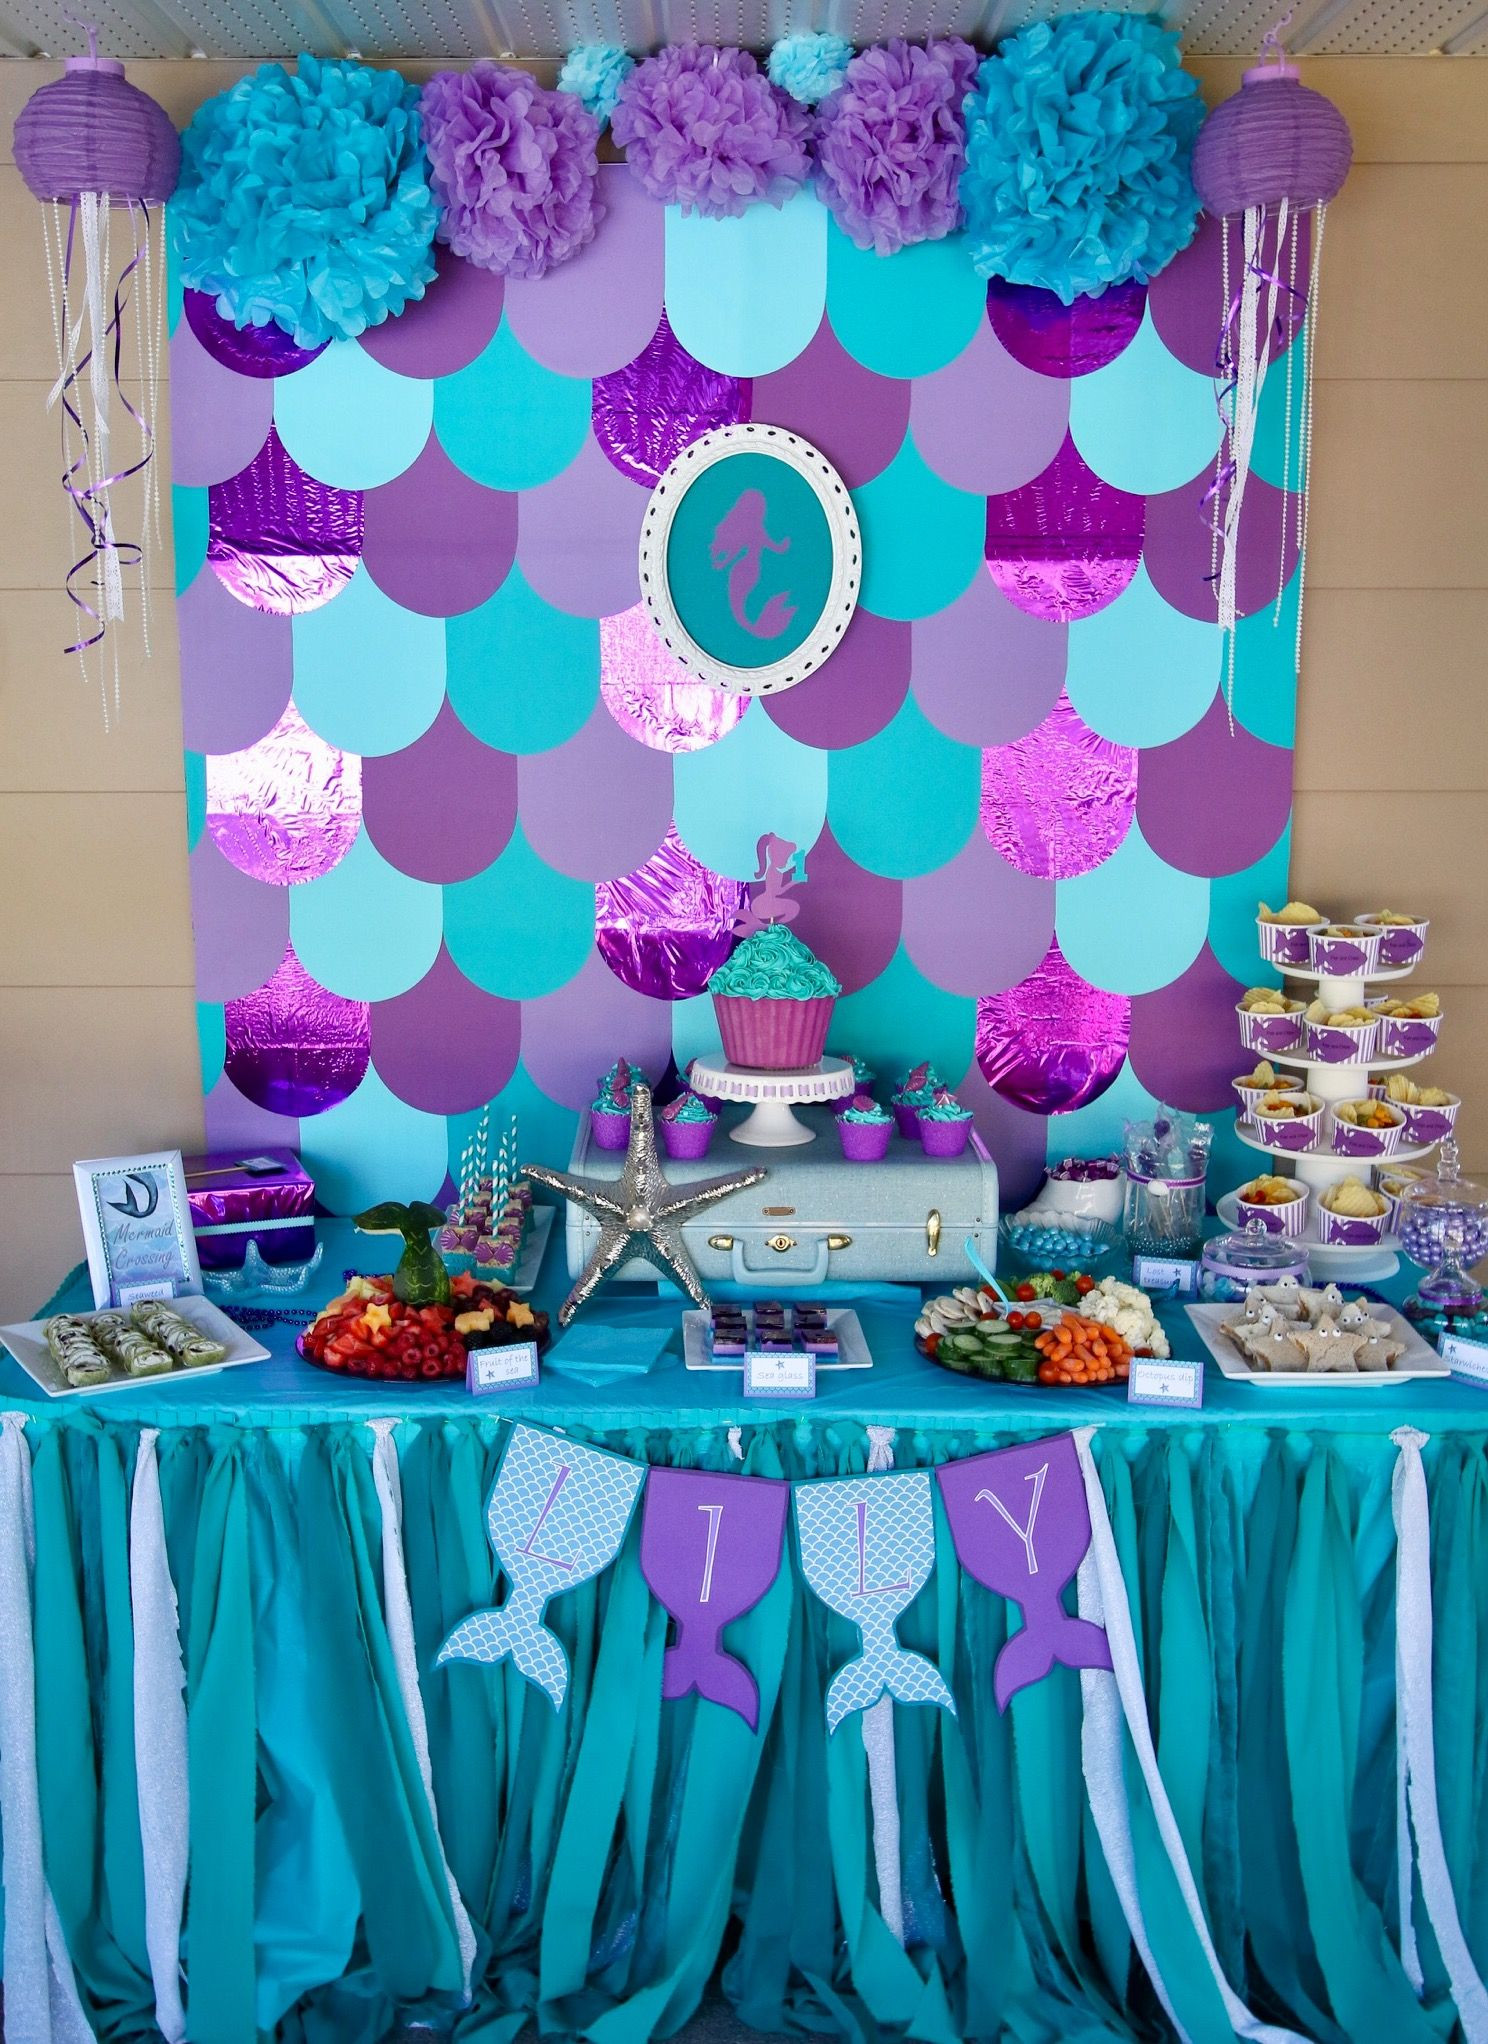 Mermaid Under The Sea Party Ideas  Mermaid party table decorations Under the sea birthday